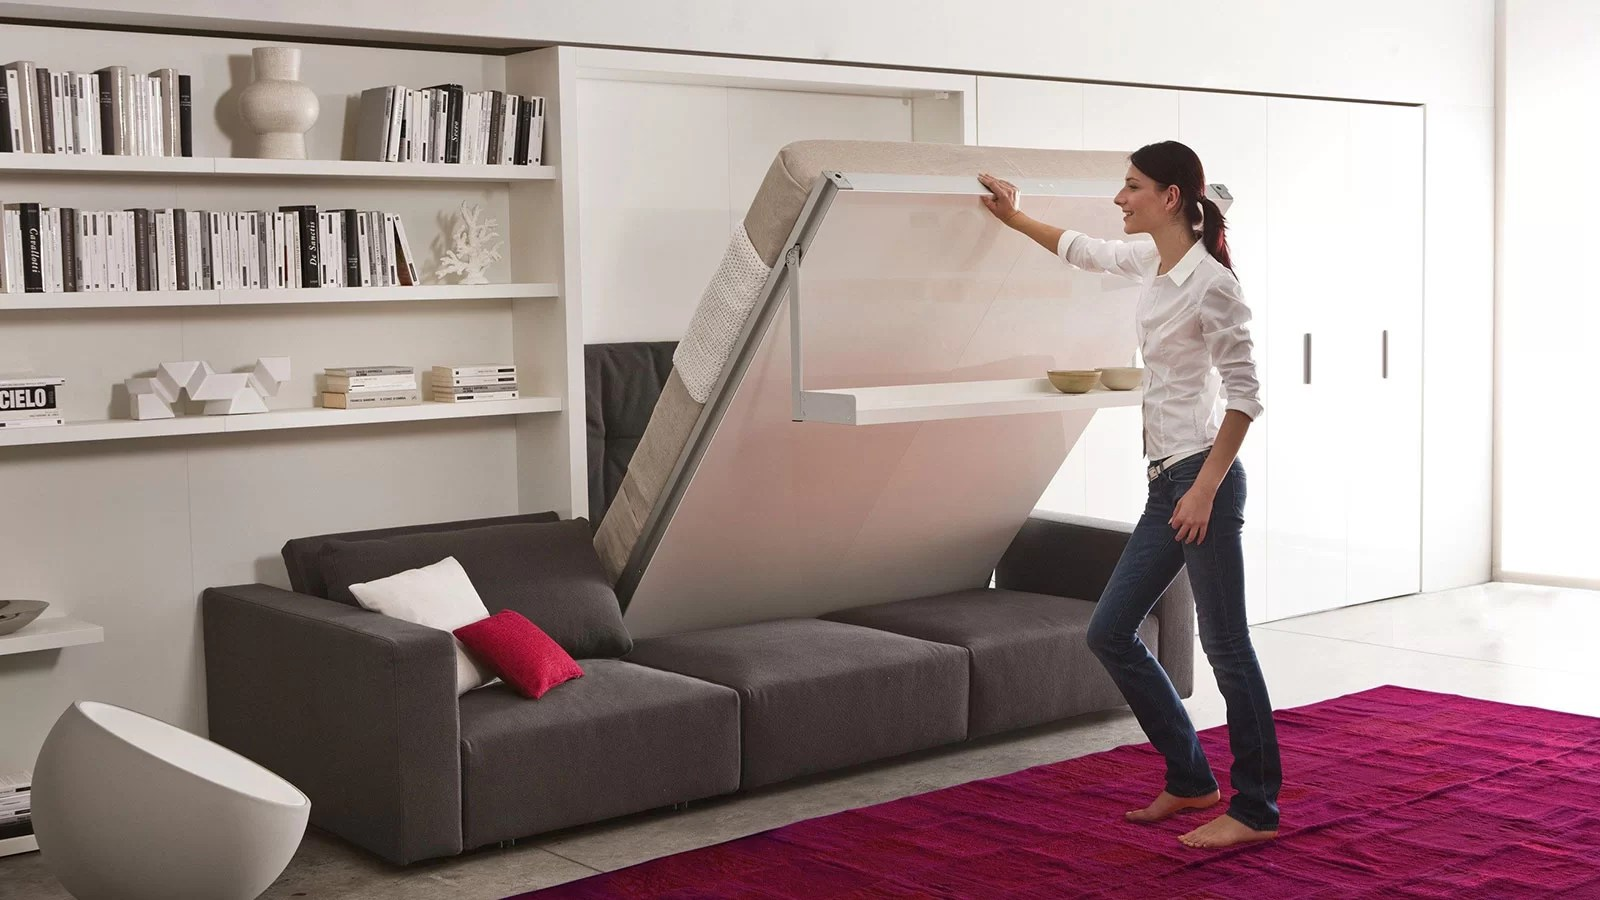 clei sofa bed living room leather these 10 modern murphy beds will help you maximize space ...